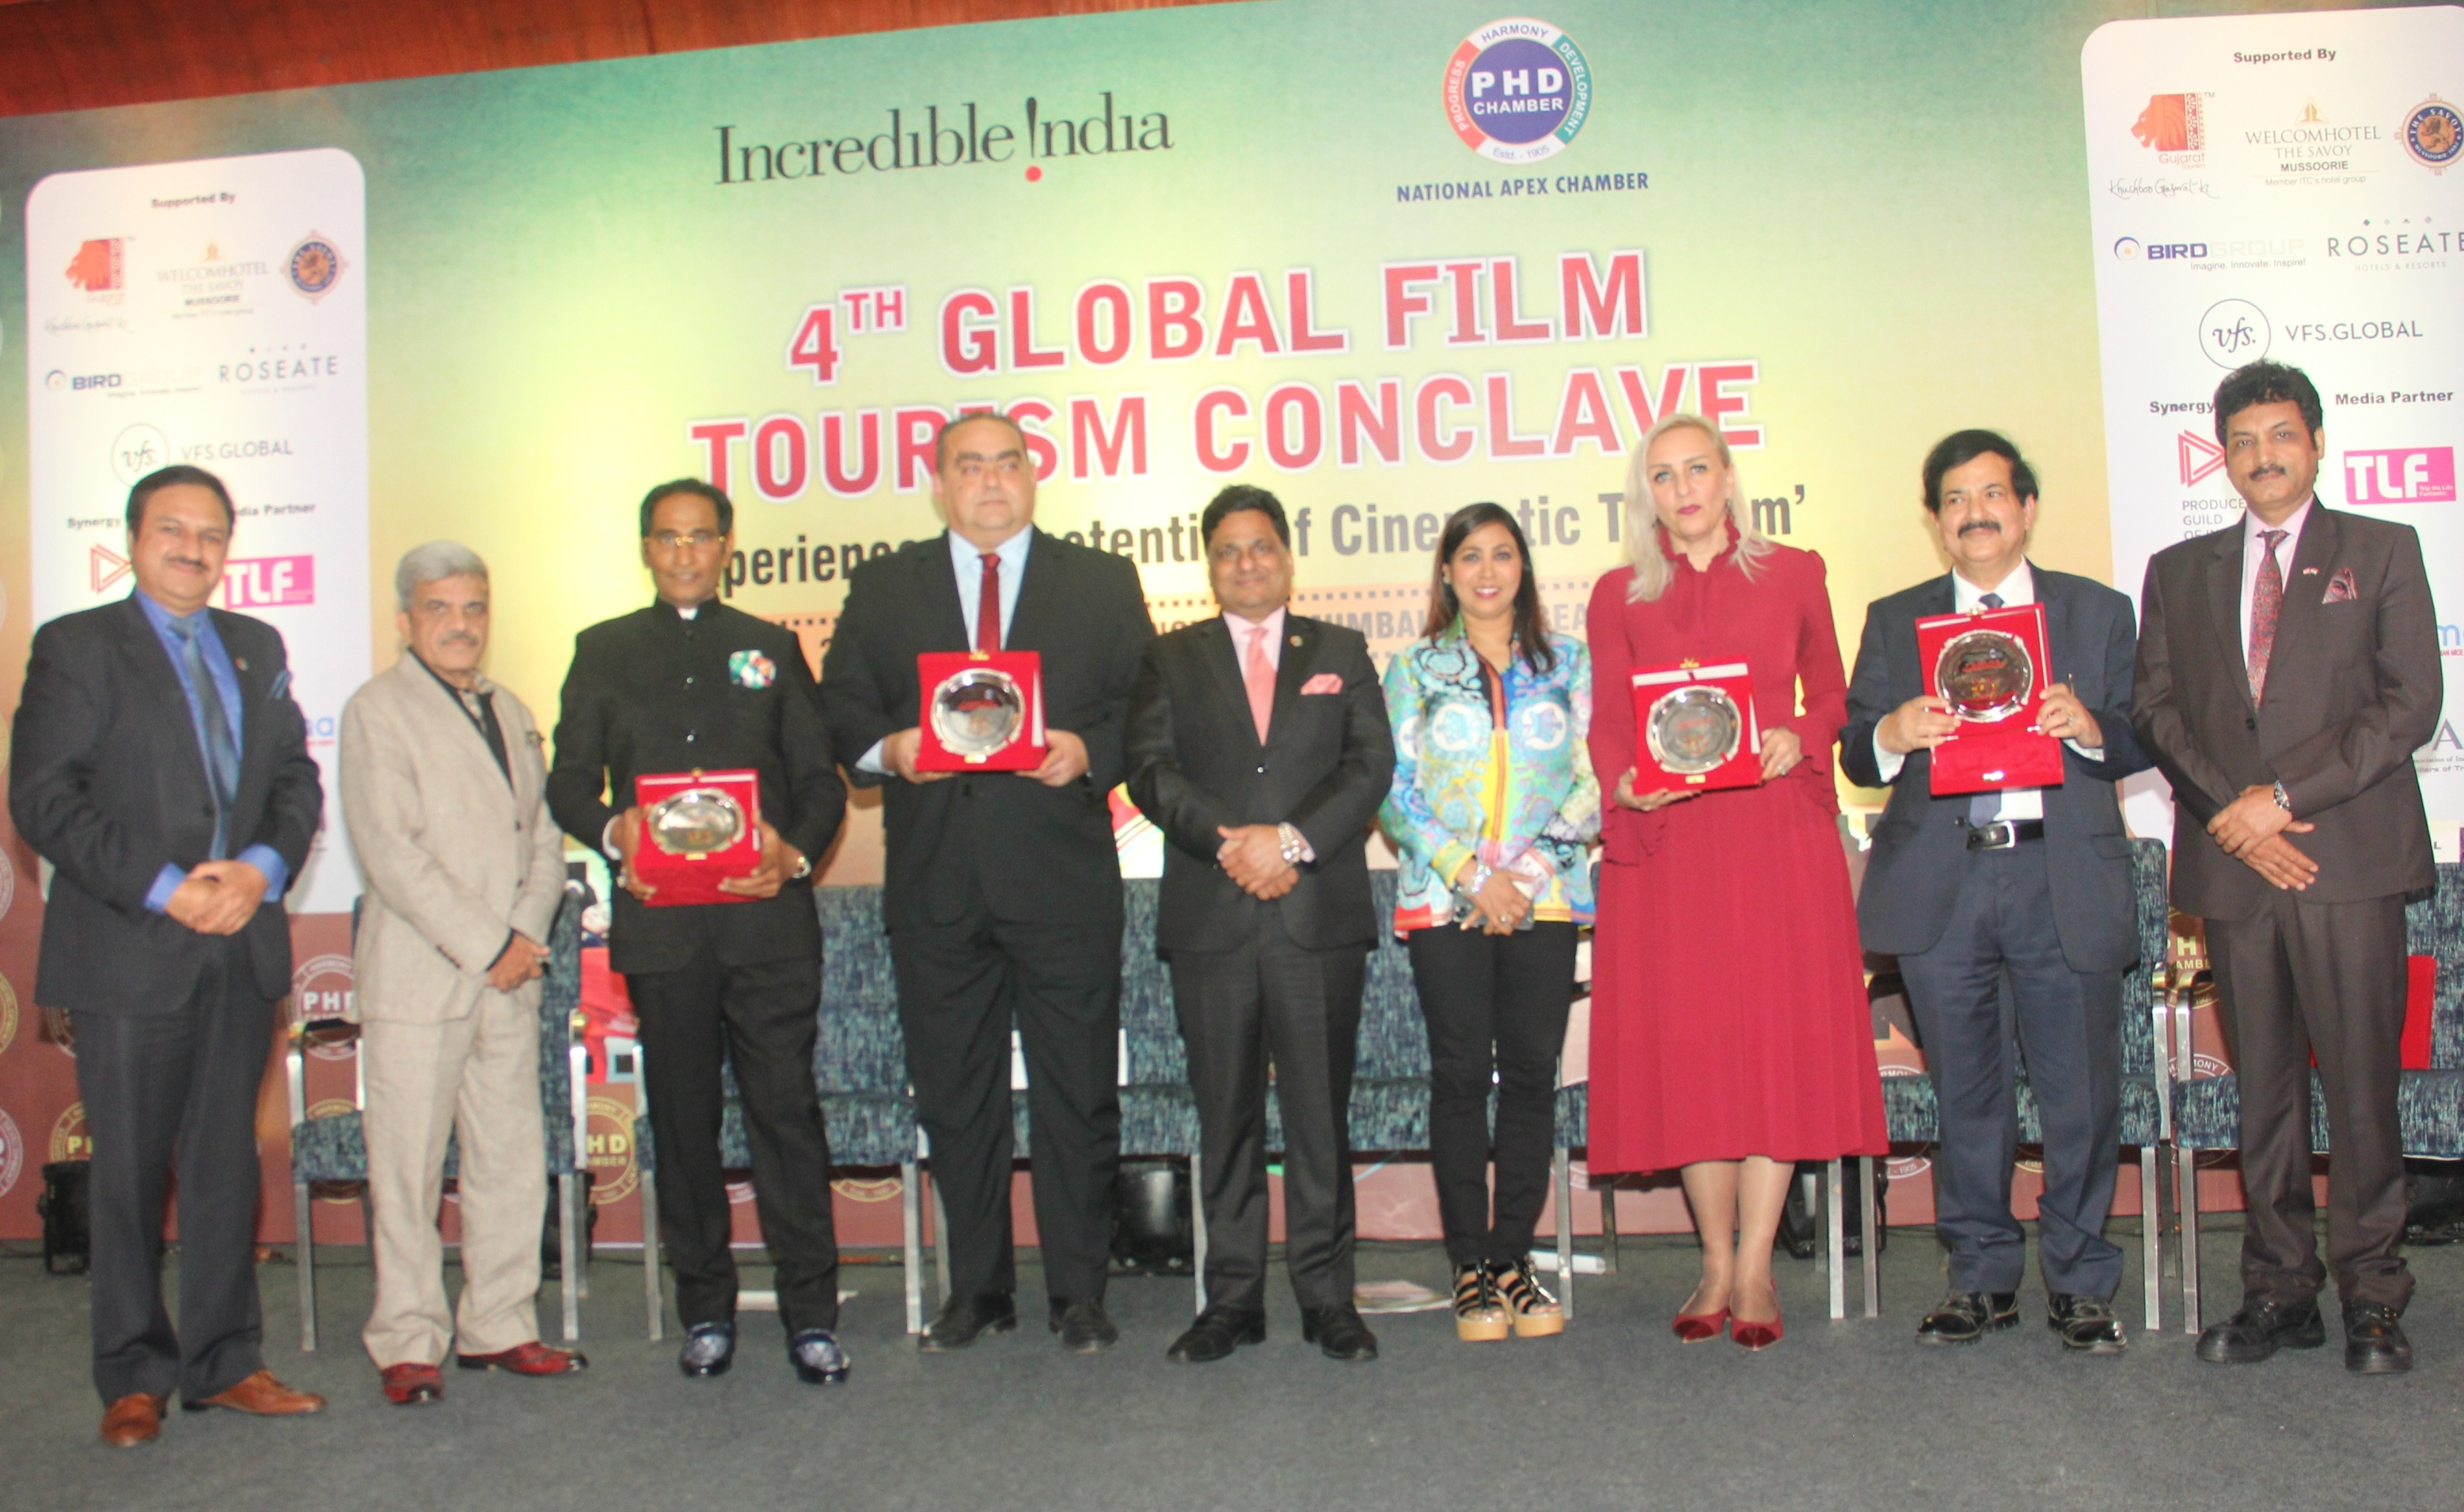 Synergy between Production Houses, Film Commissions and State Tourism Boards, essential for promoting Film Tourism: PHDCCI